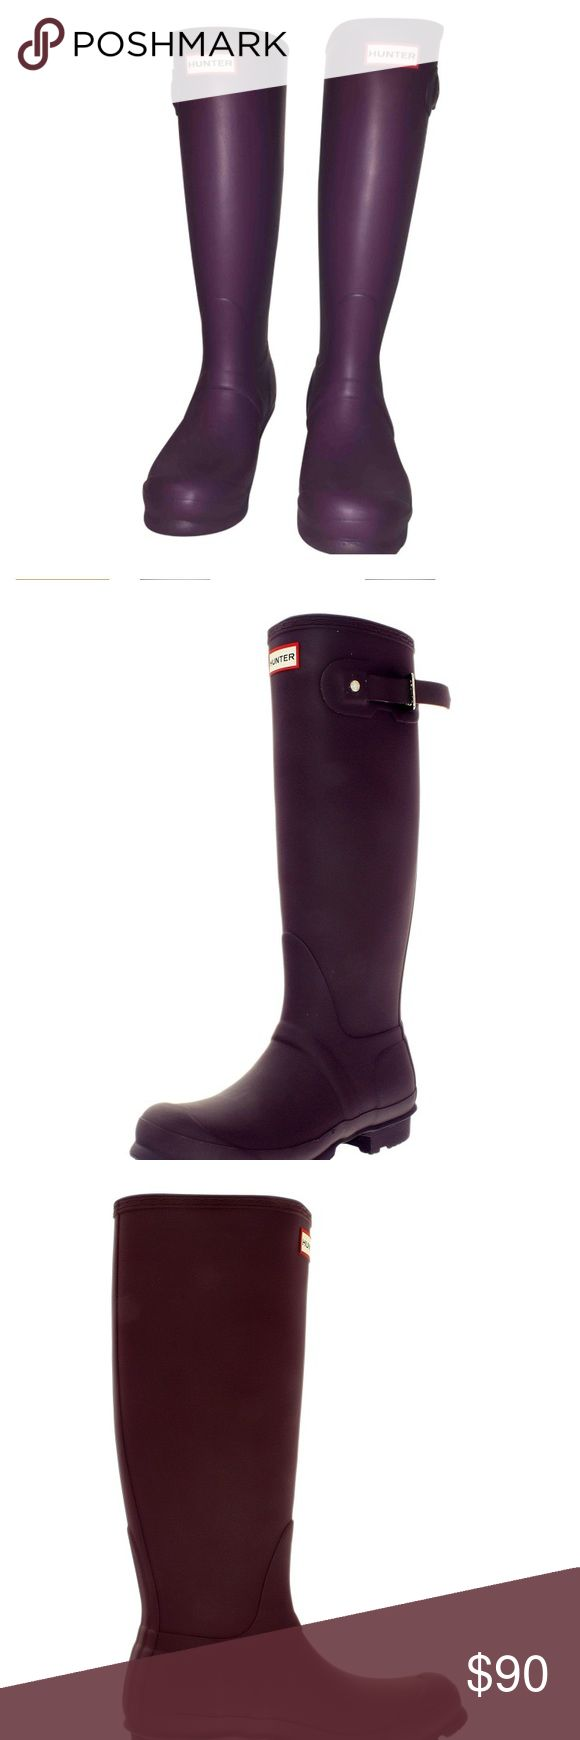 Hunter Original Tall Wellington- Aubergine Matte >> Aubergine Matte<< Completely waterproof exterior, dark purple, Hunter Tall Original boots —Measurements— Heel Height 1 1/4in Weight 1 lb 8 oz Circumference 15in Shaft 15 1/2in  ((Hunter size 36, I wear a 6/6.5 in other shoes)) Hunter Boots Shoes Winter & Rain Boots